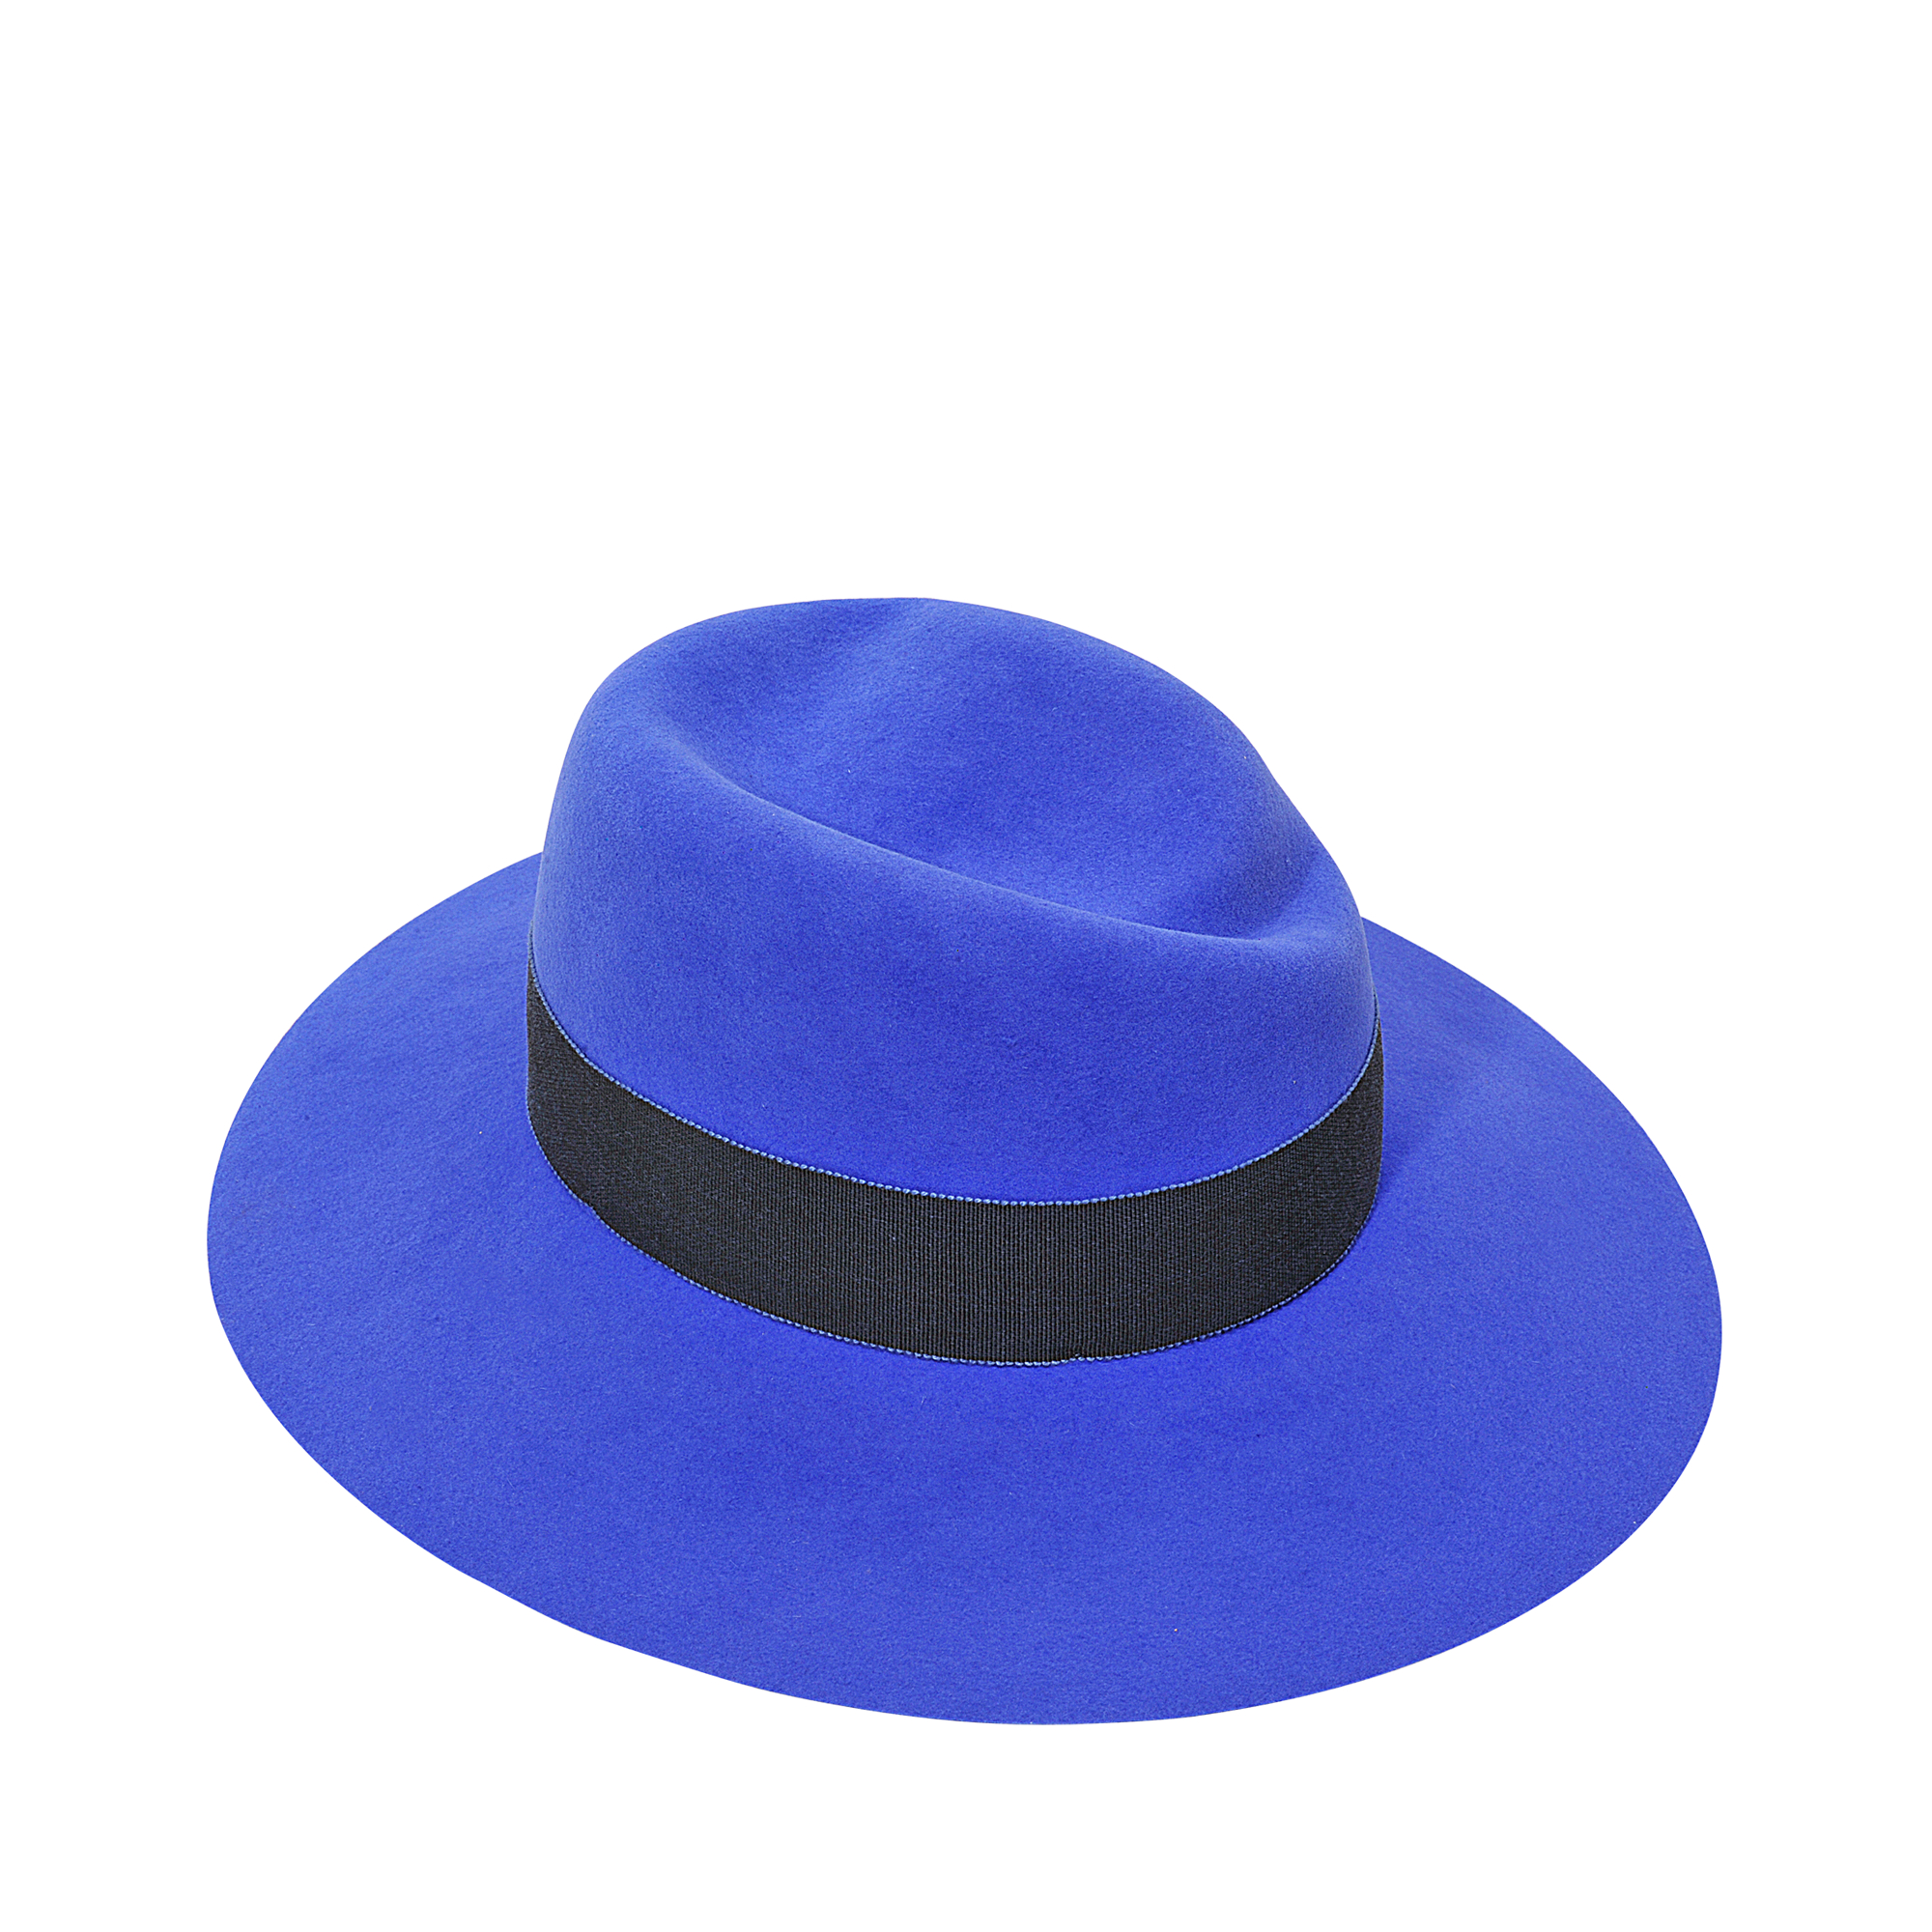 84465c3b6fc7a Maison Michel Virginie Large Brim Hat in Blue - Lyst